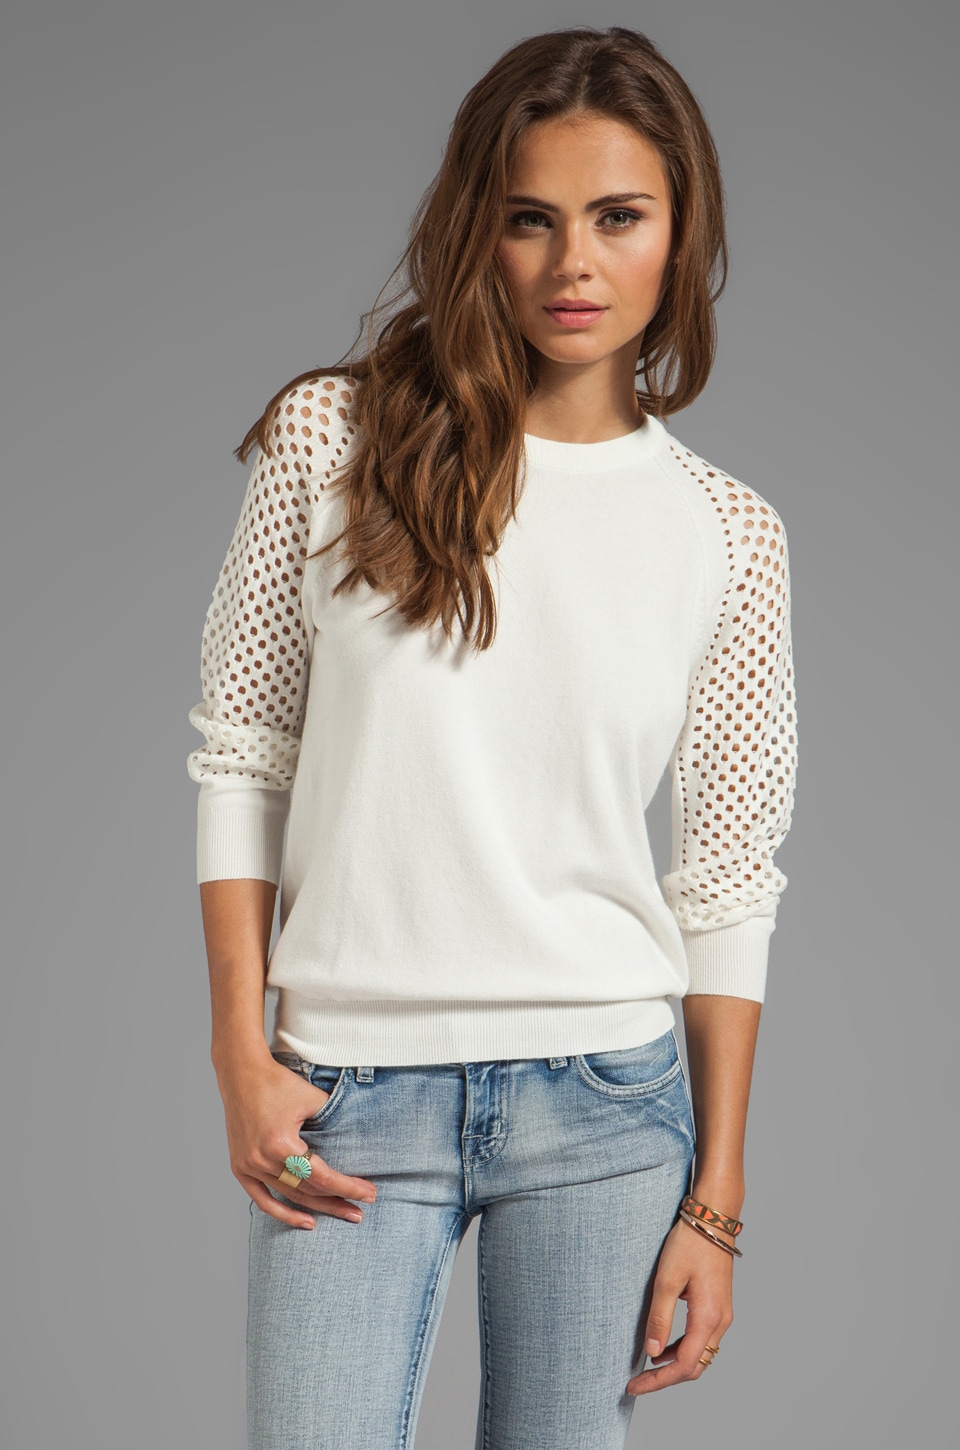 Marc by Marc Jacobs Cienaga Sweater Pullover in Wicken White